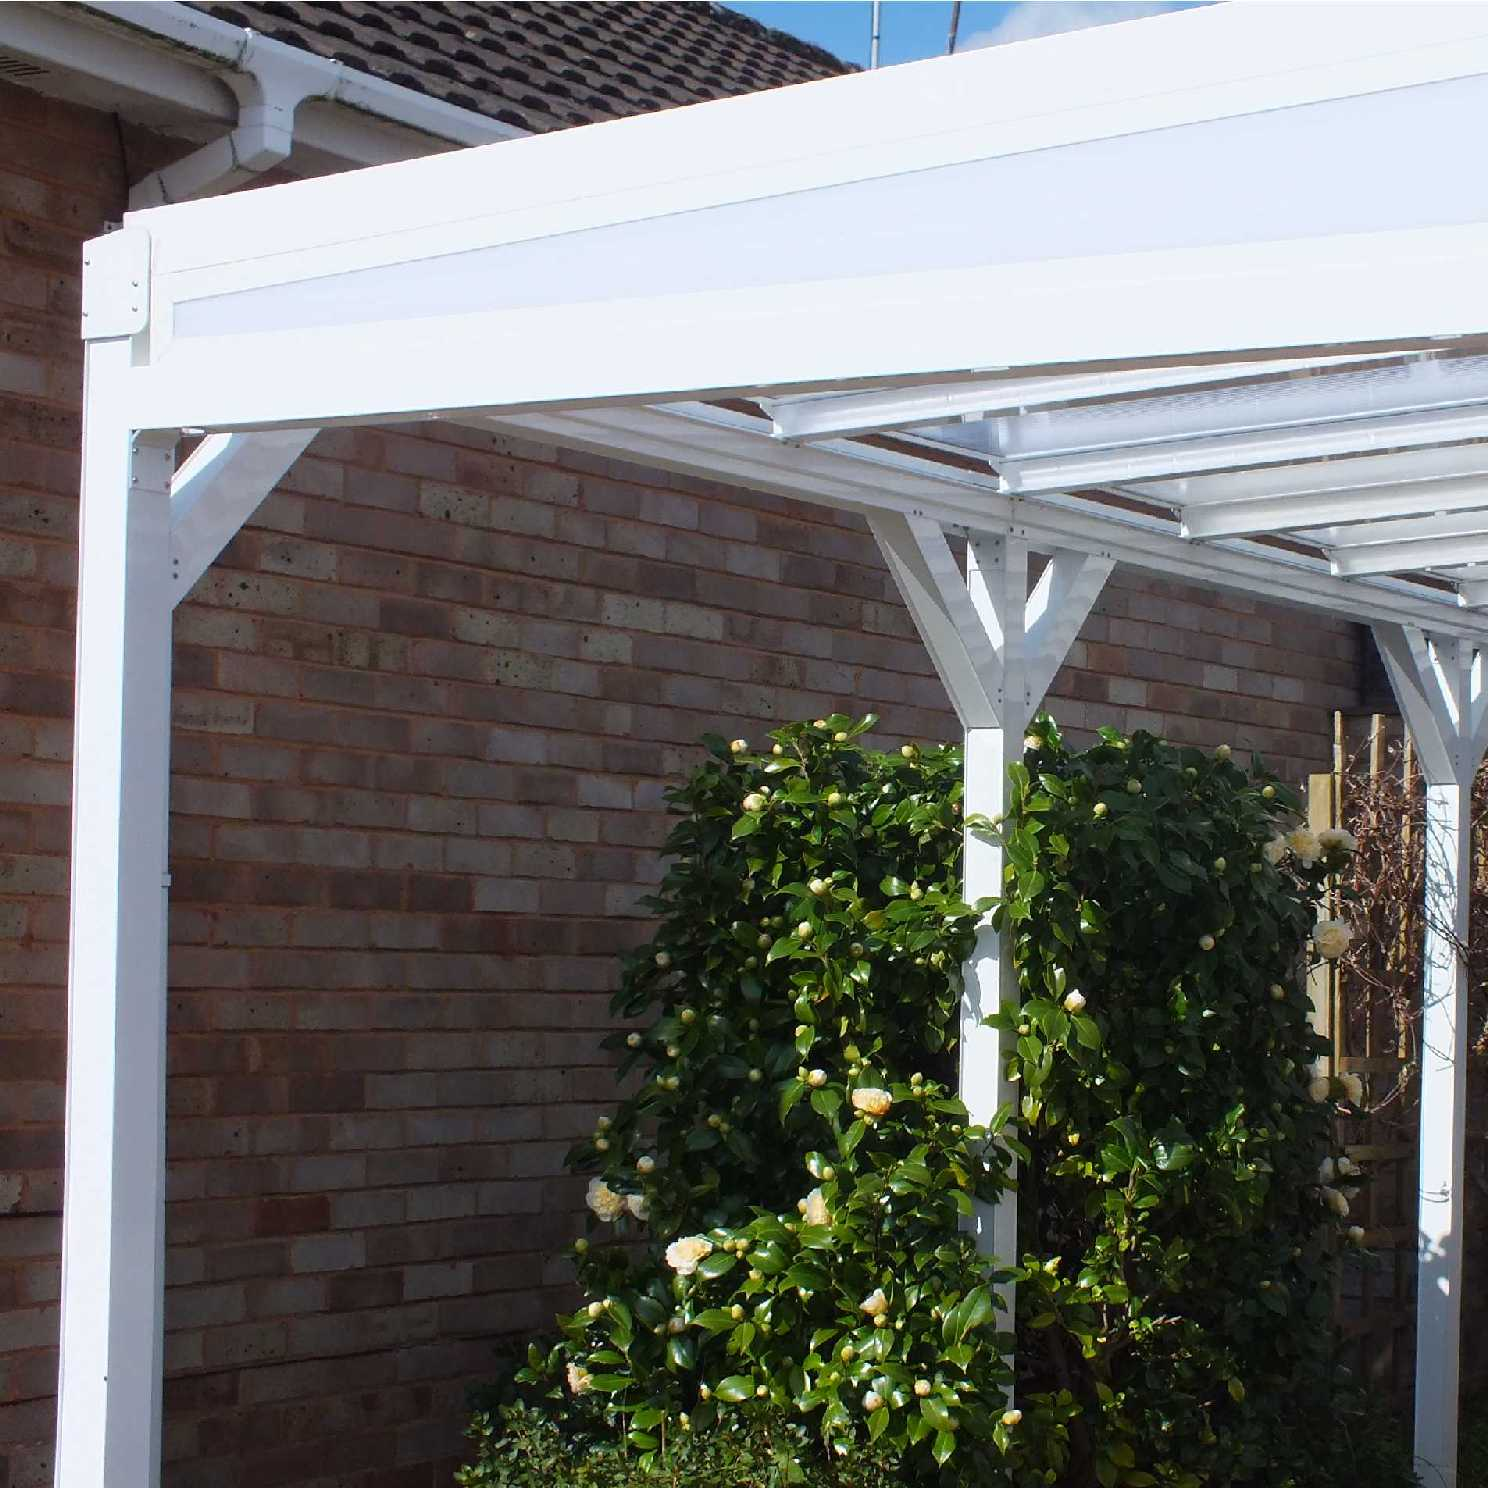 Omega Smart White Lean-To Canopy with 16mm Polycarbonate Glazing - 8.0m (W) x 4.5m (P), (4) Supporting Posts from Omega Build